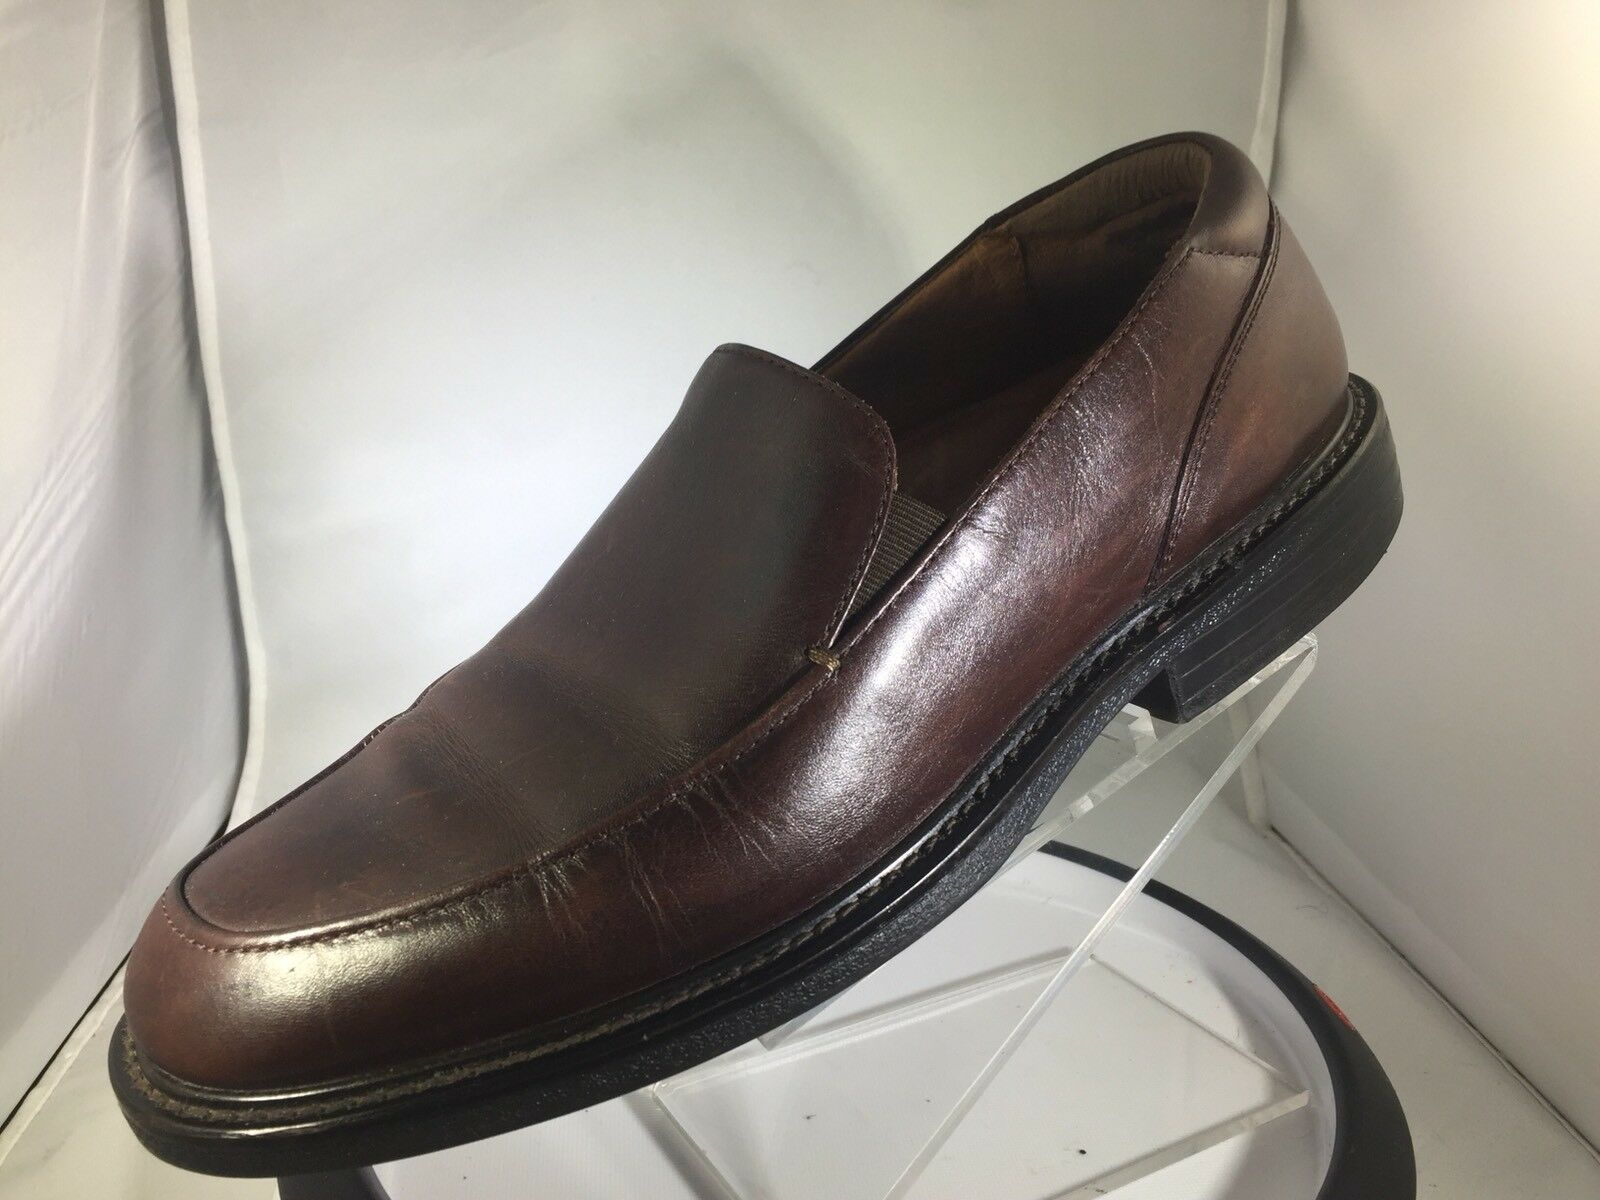 Florsheim Brown Toe Leather Slip On Apron Toe Brown Dress Loafers Men's Size 10 M c789da